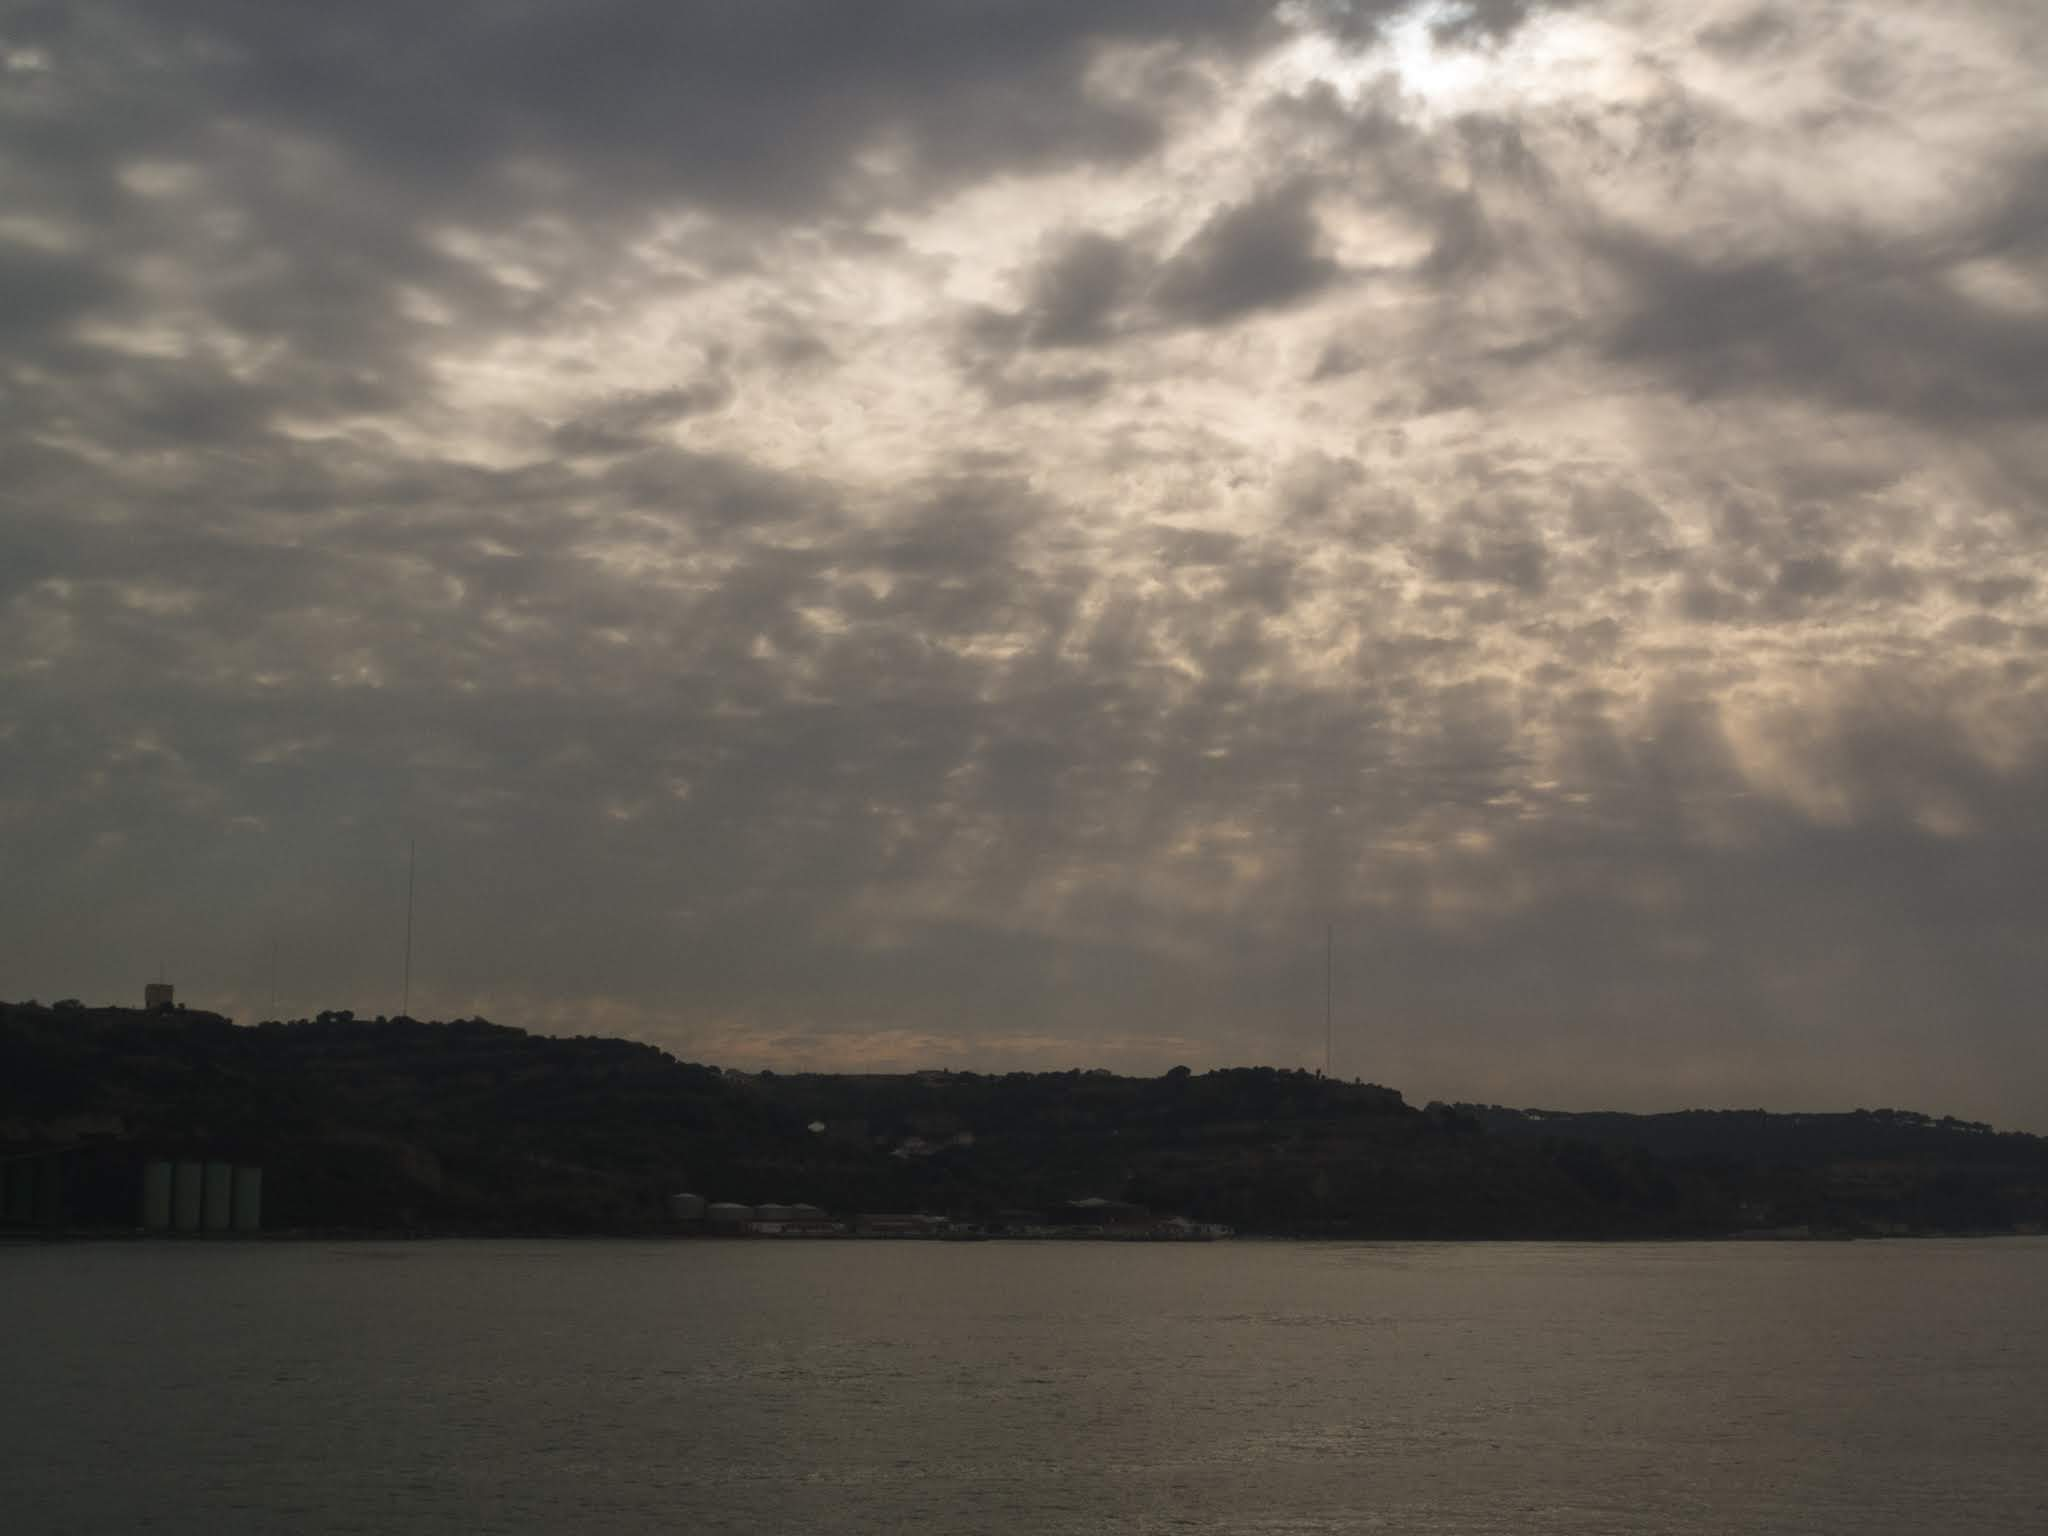 Sky and landscape on the Tagus river in Lisbon, Portugal.